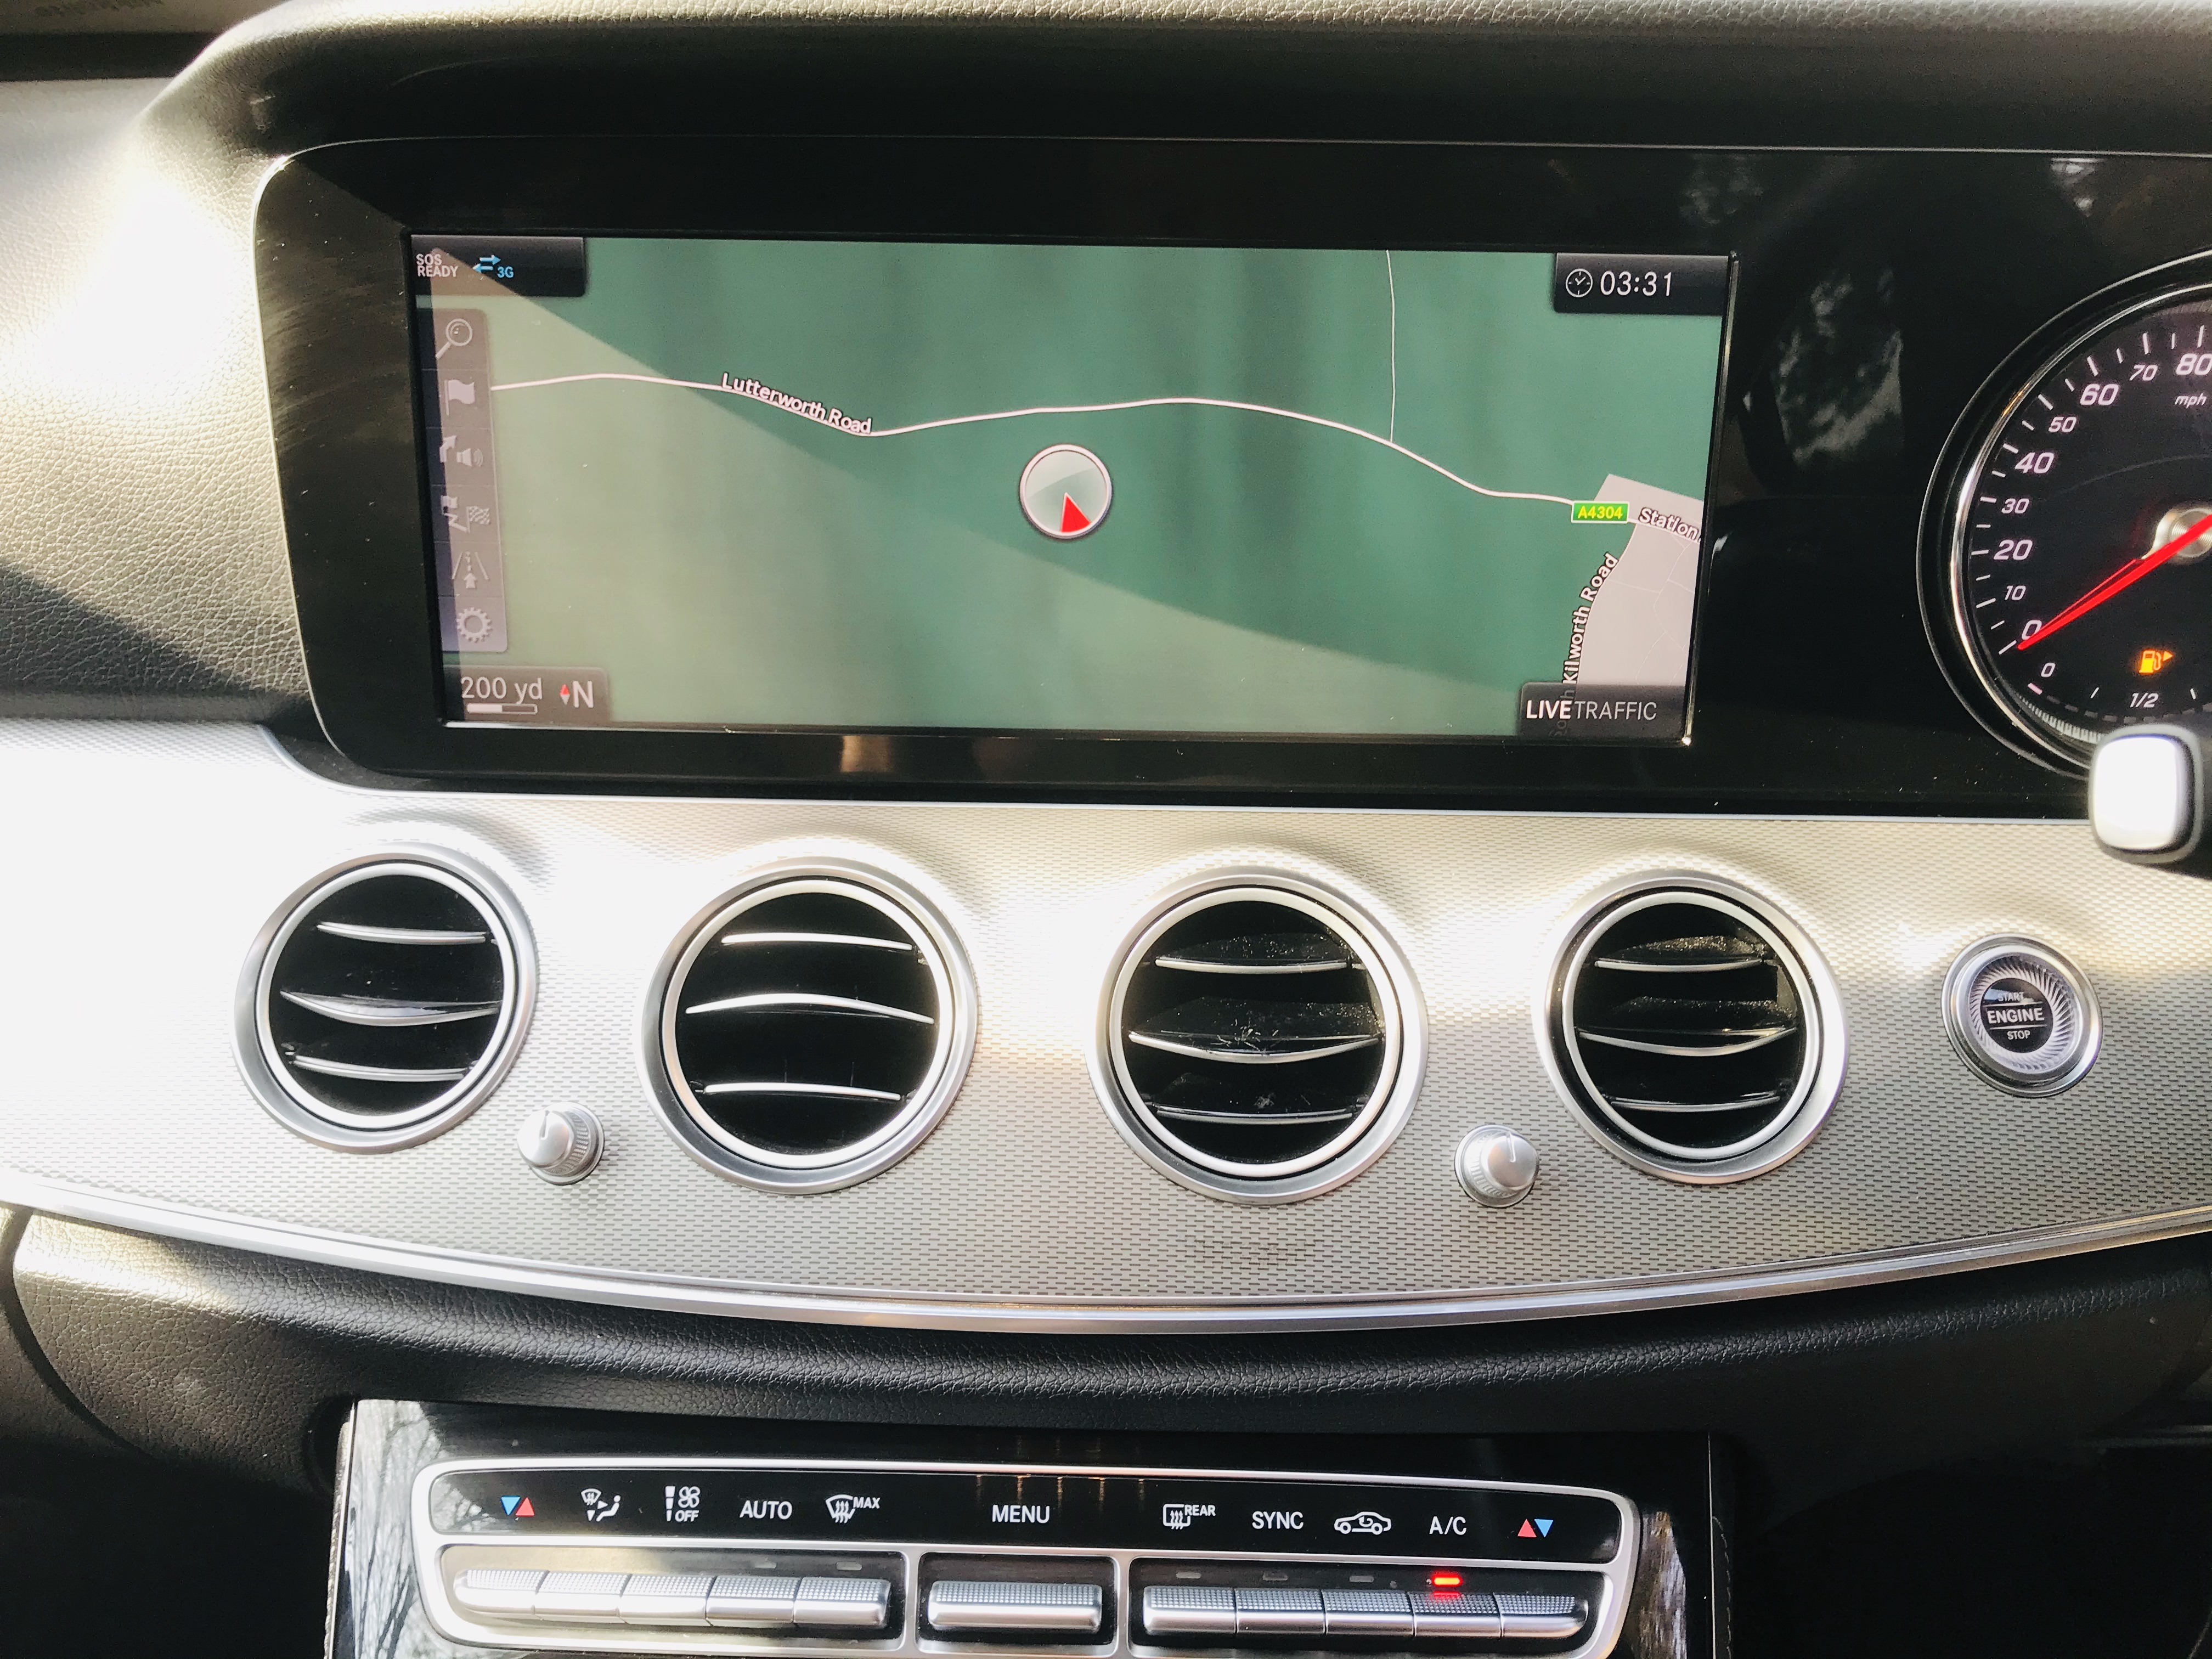 """On Sale MERCEDES E220d """"SPECIAL EQUIPMENT"""" 9G TRONIC (2019 MODEL) 1 OWNER - SAT NAV - LEATHER - WOW! - Image 23 of 26"""